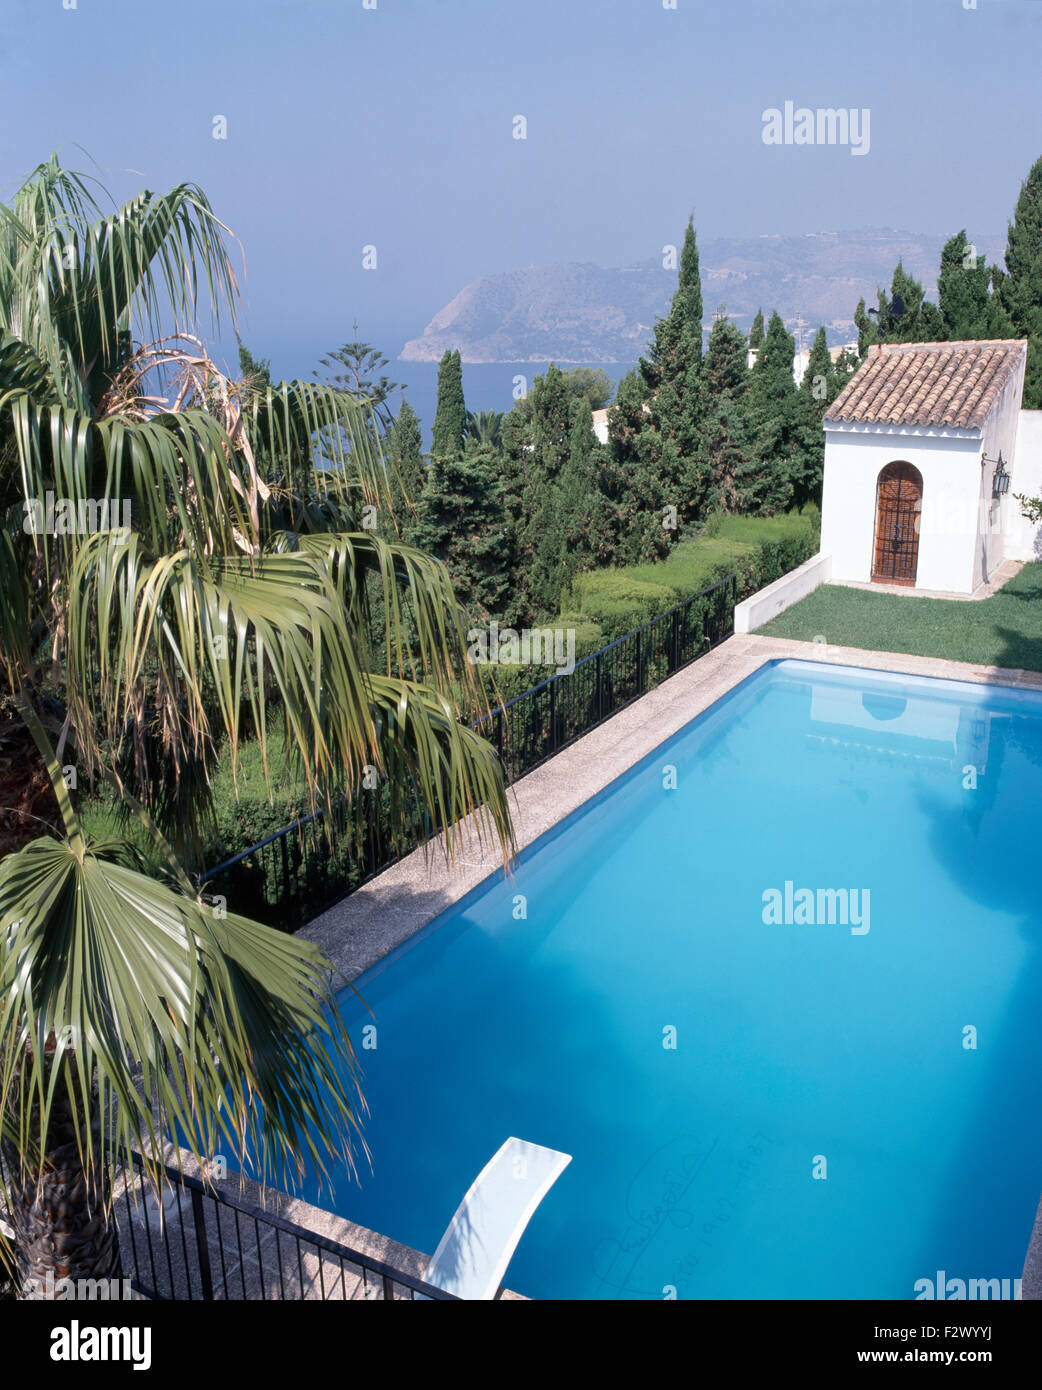 Birdseye view of turquoise swimming pool in grounds of Spanish villa - Stock Image